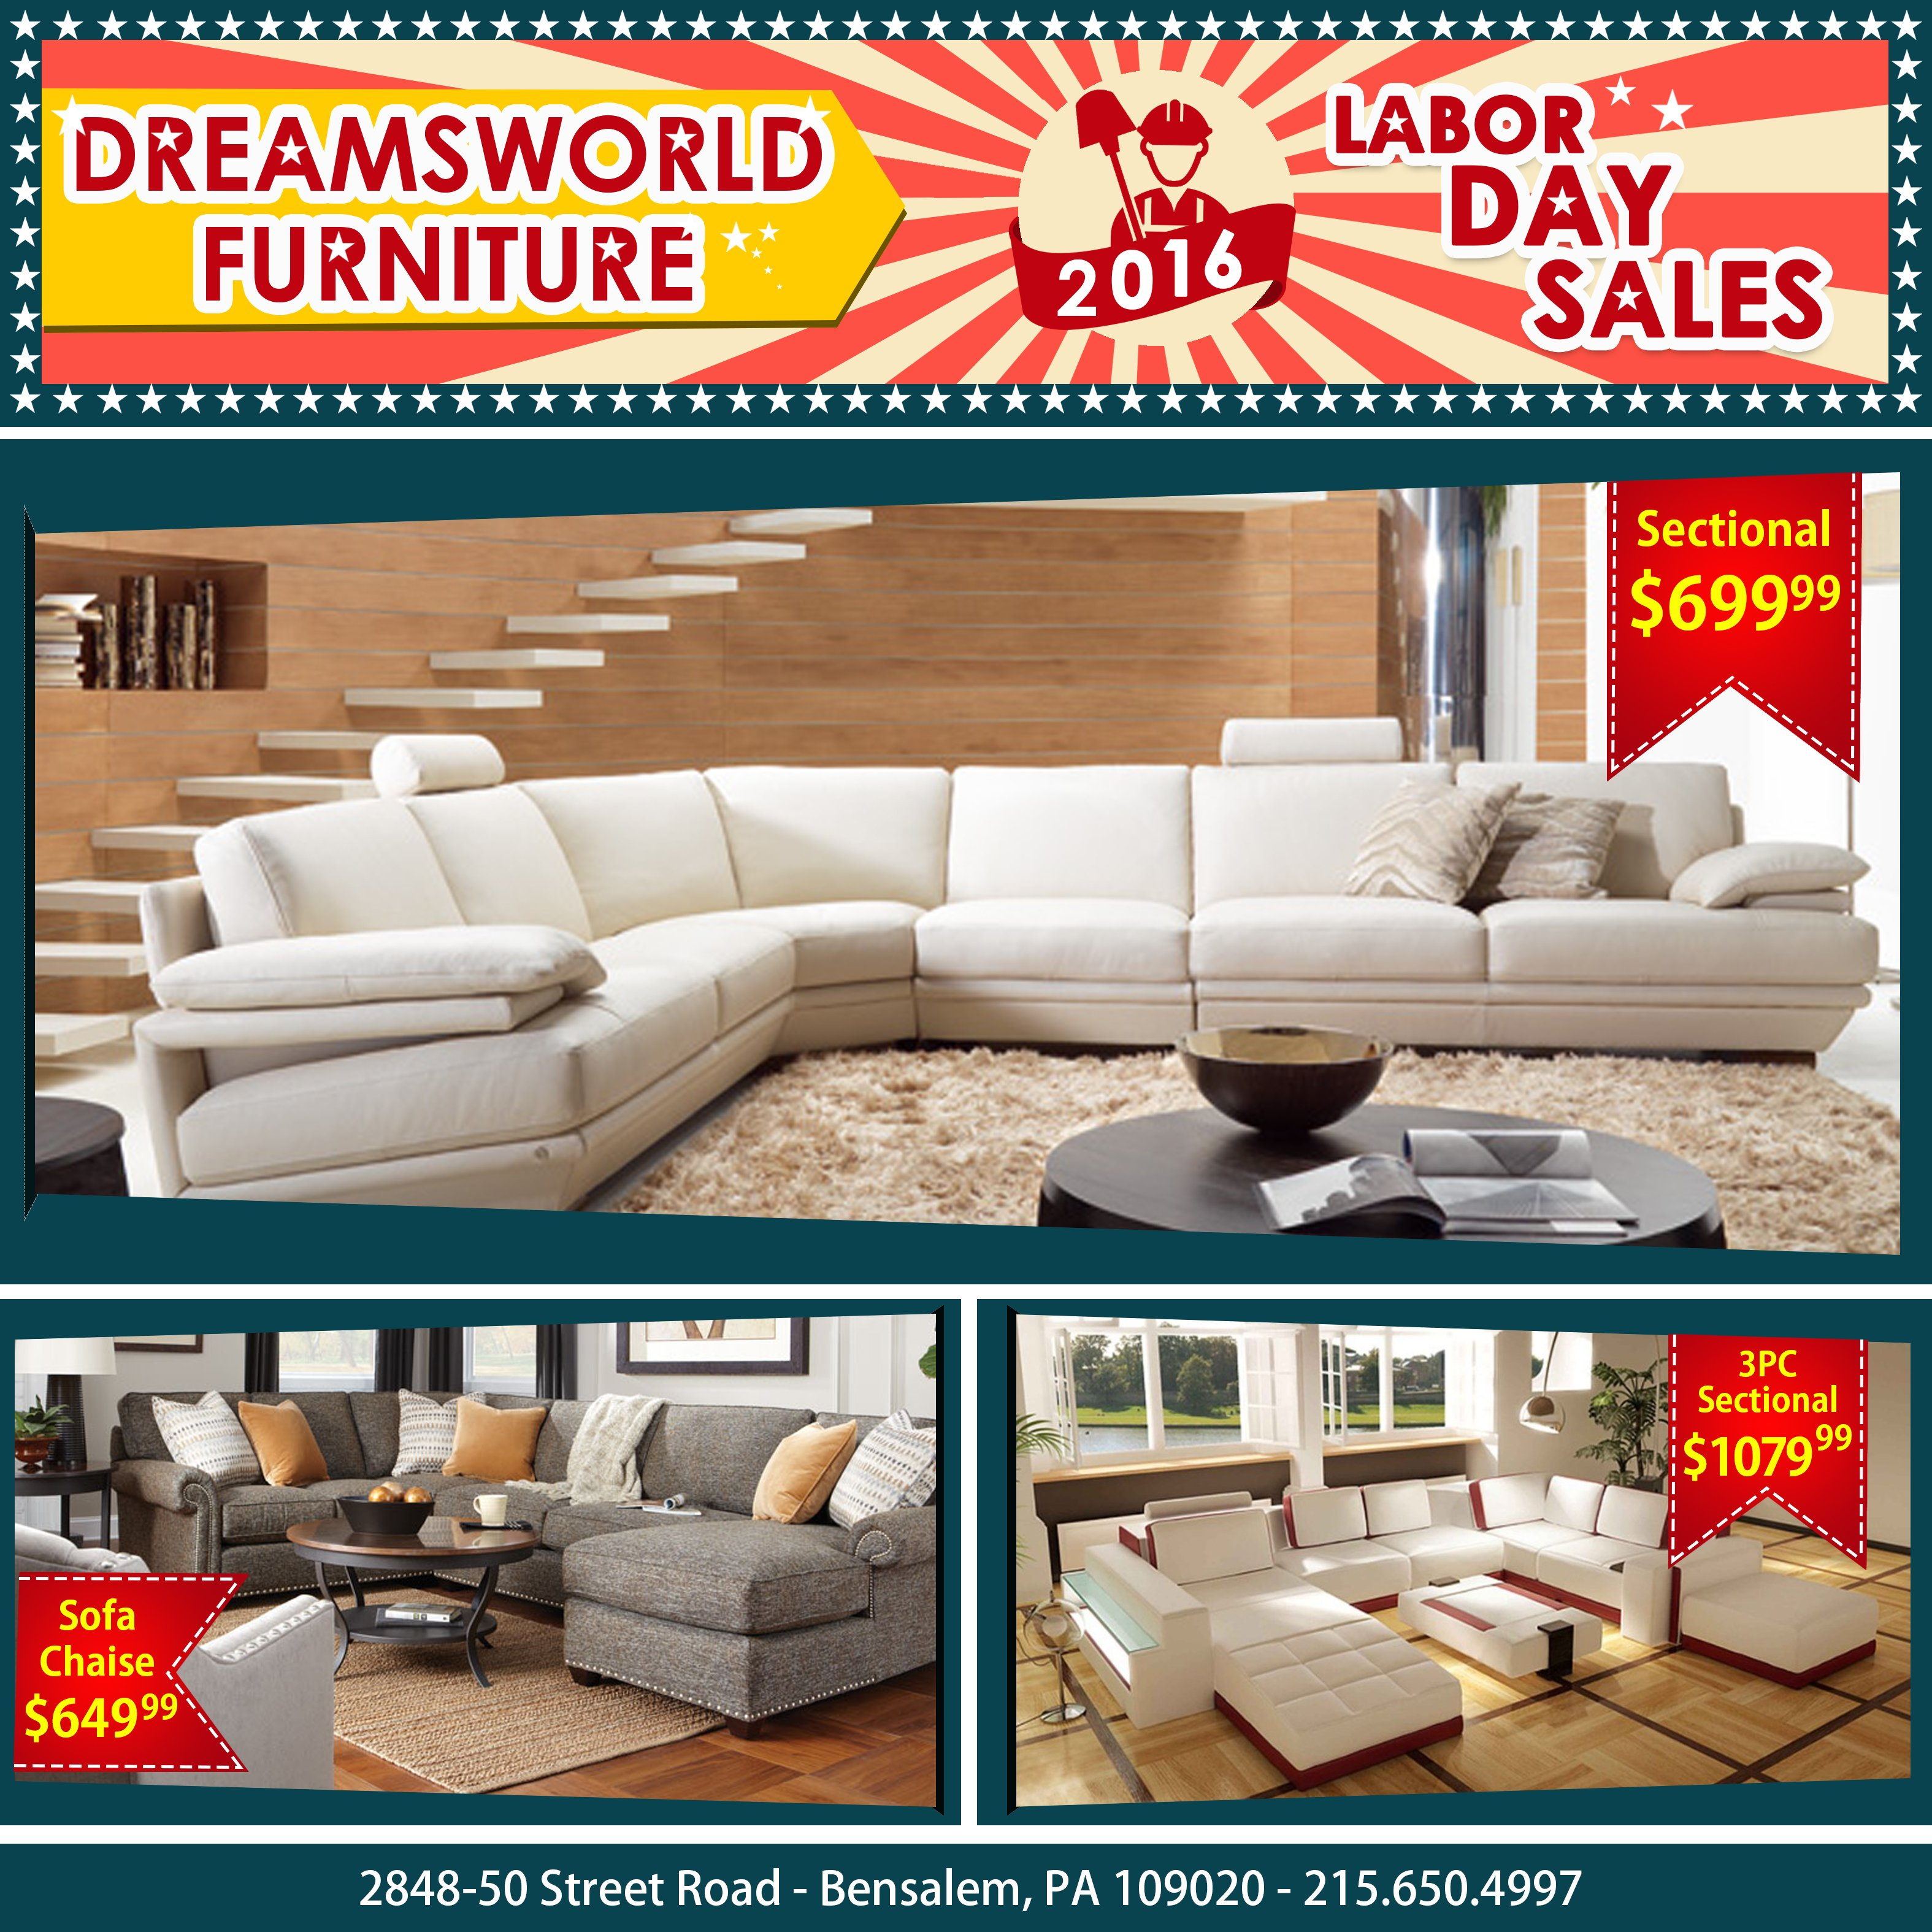 Labor day furniture sales photo labor day storewide sale for Labor day couch sale